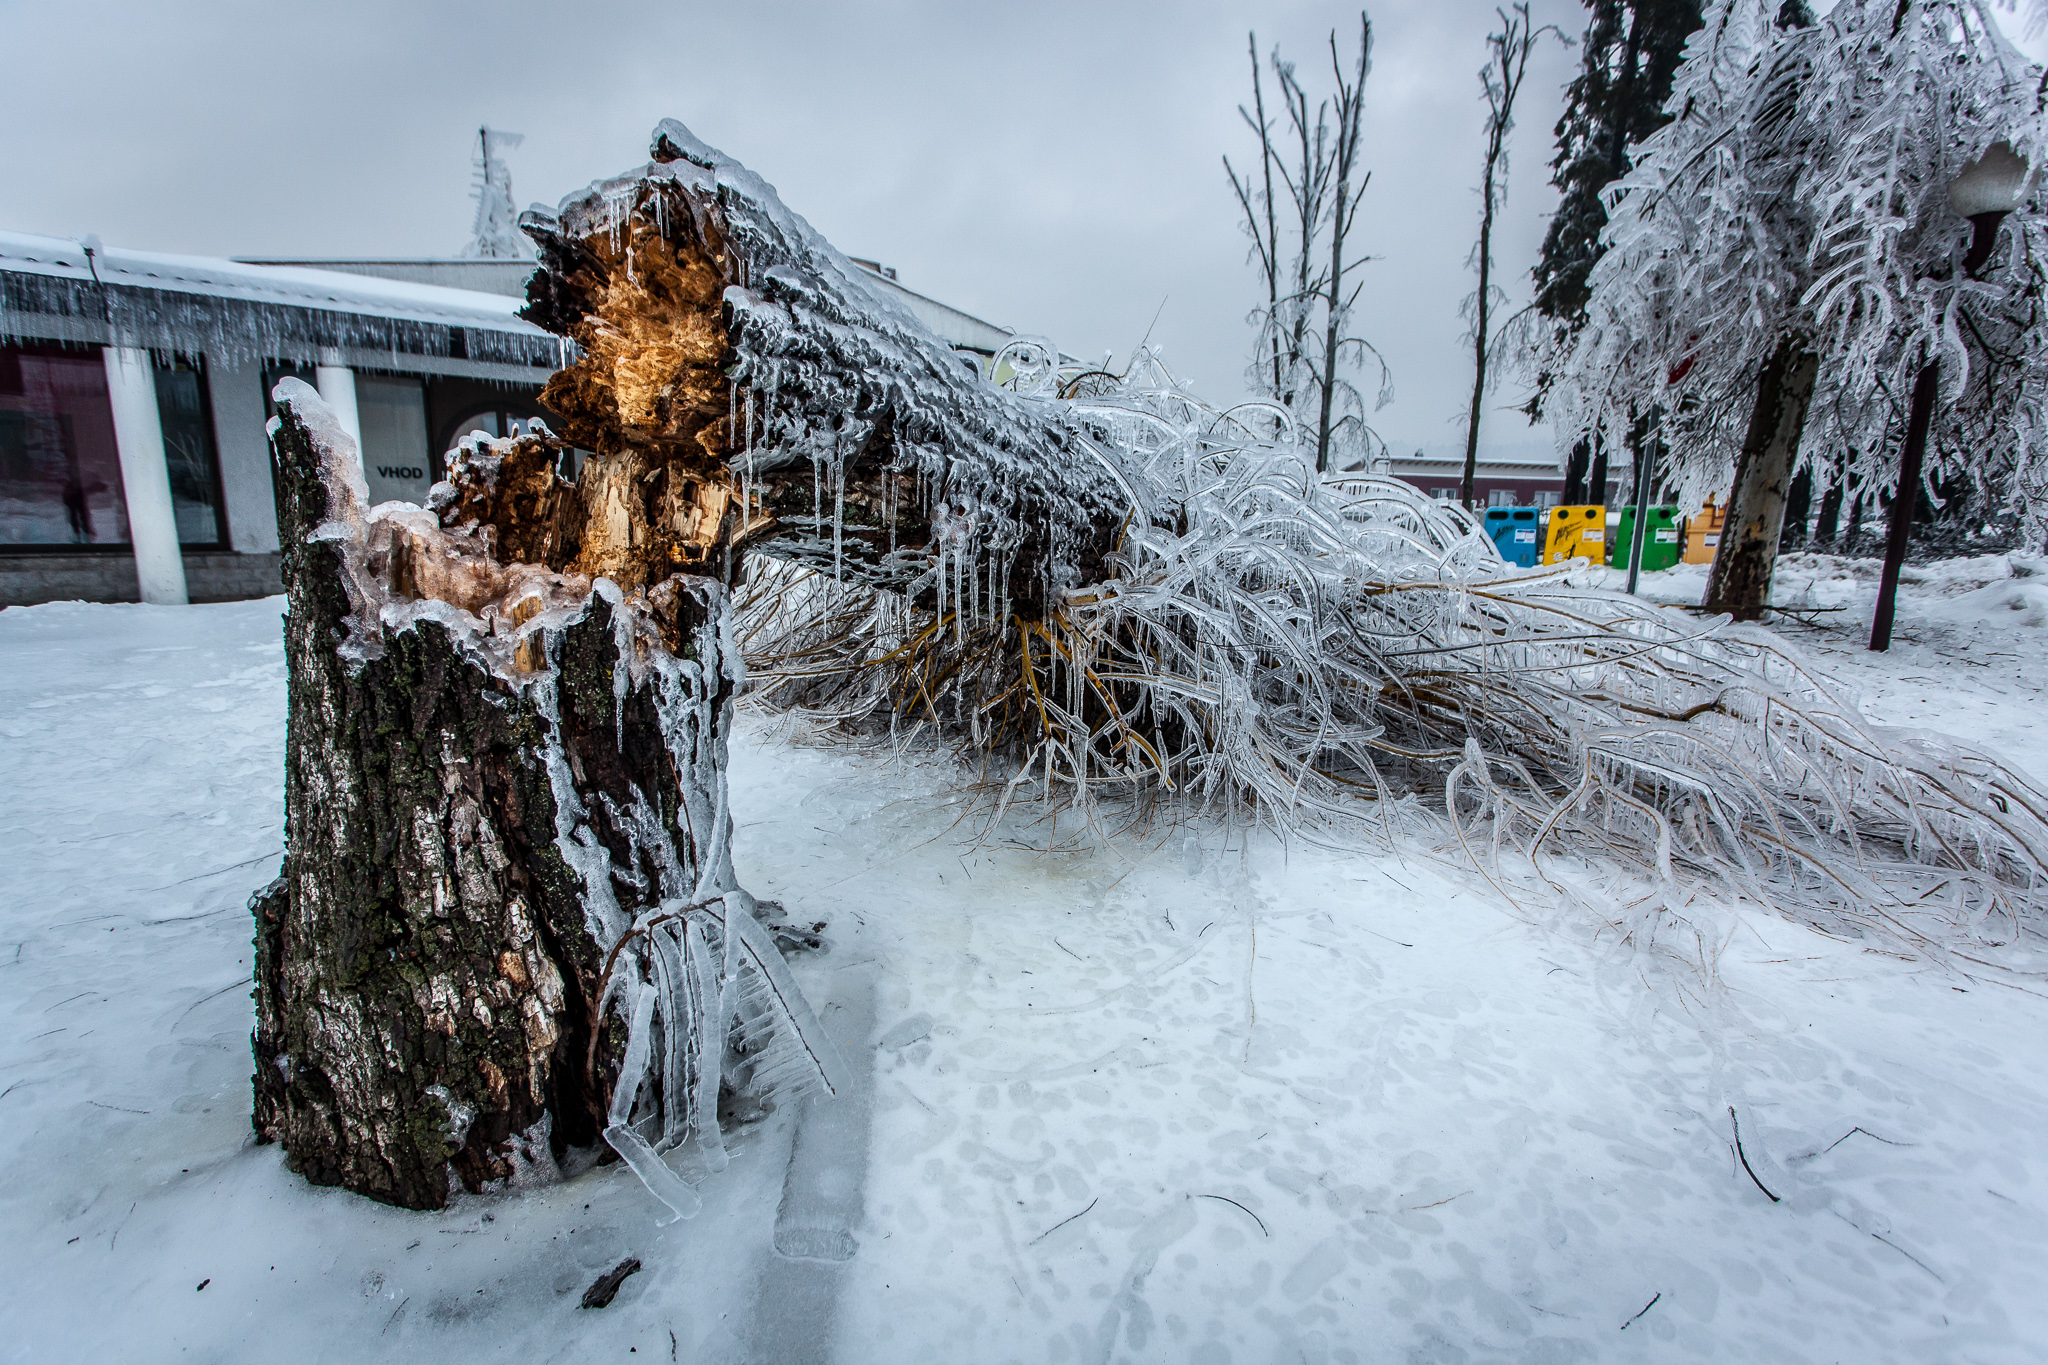 The tree probably fell because of strong wind and weight of ice on the branches.